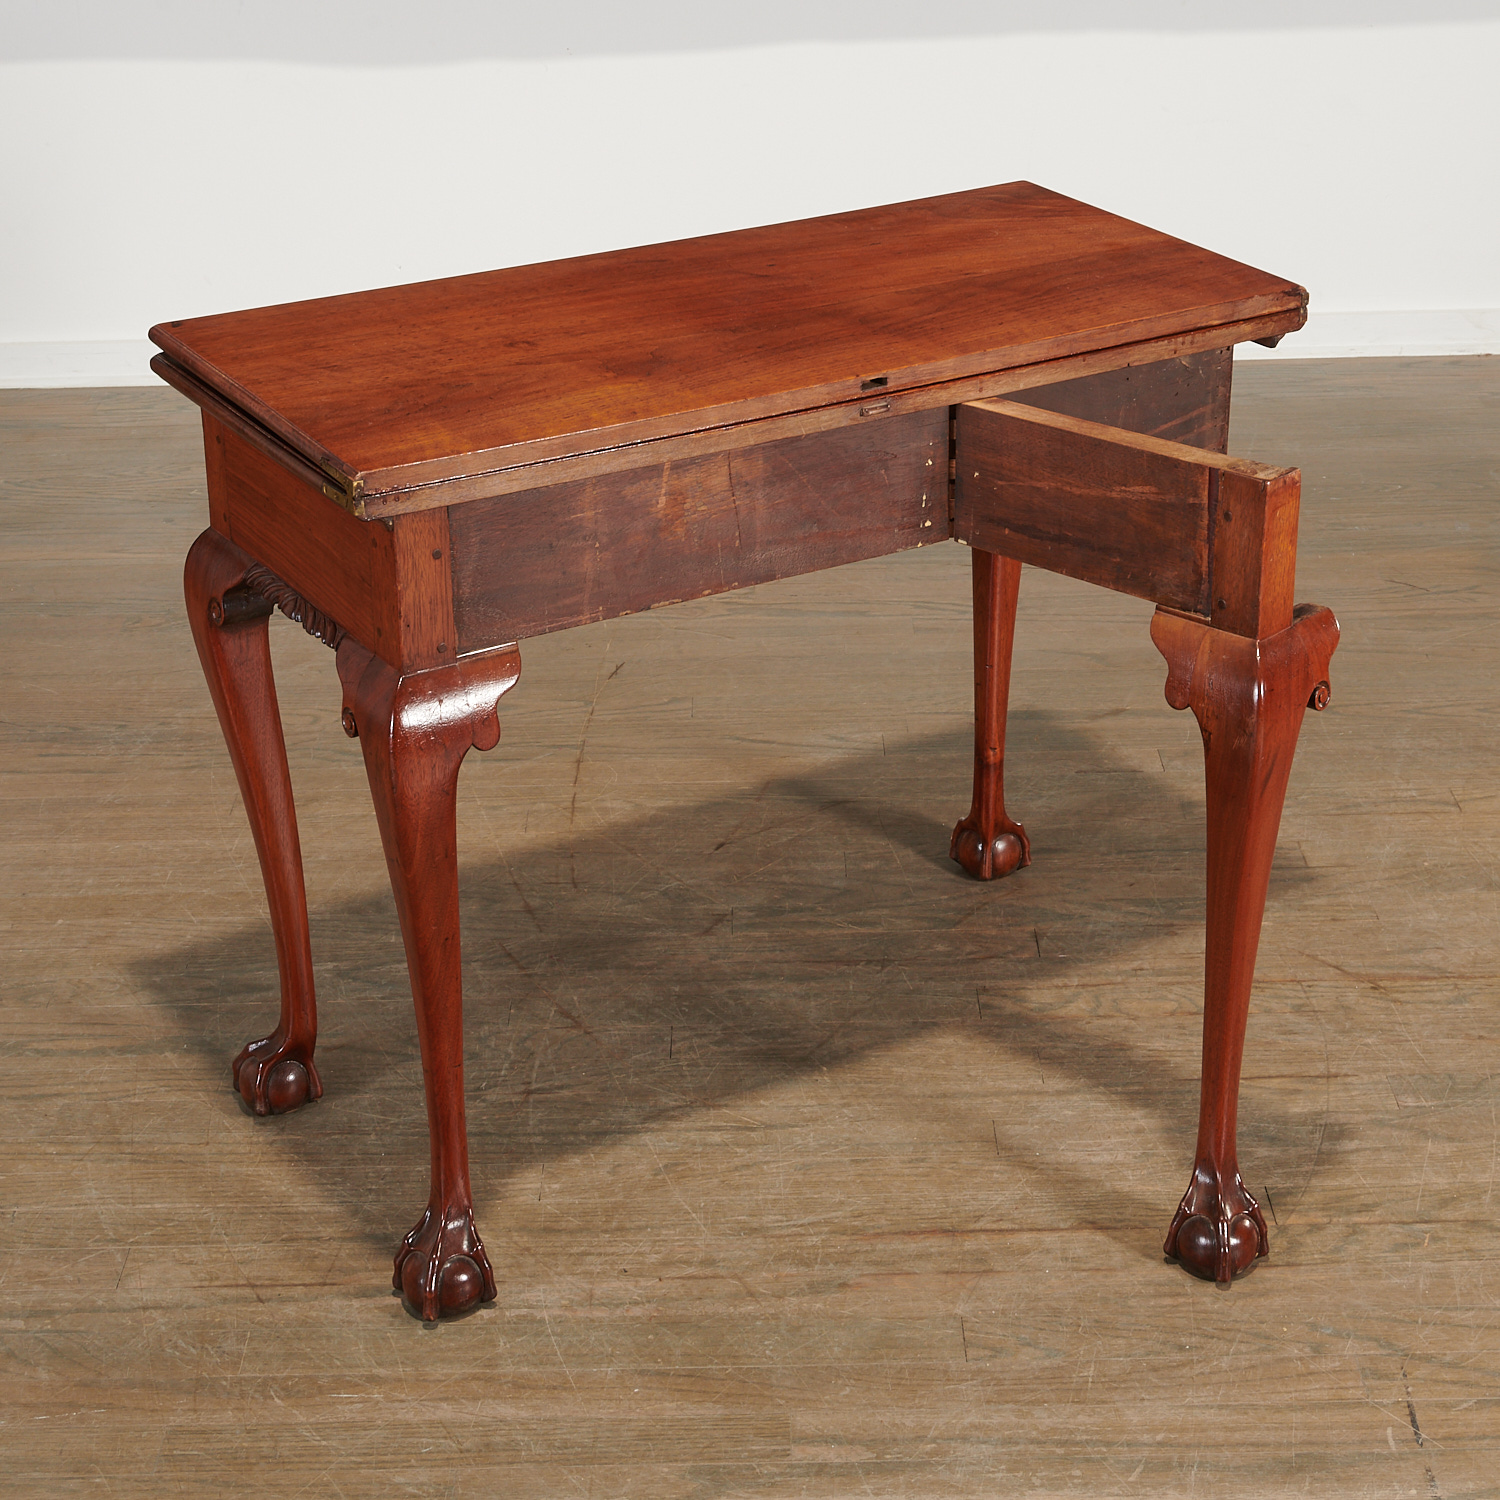 Lot 42 - American Chippendale Carved Walnut Card Table